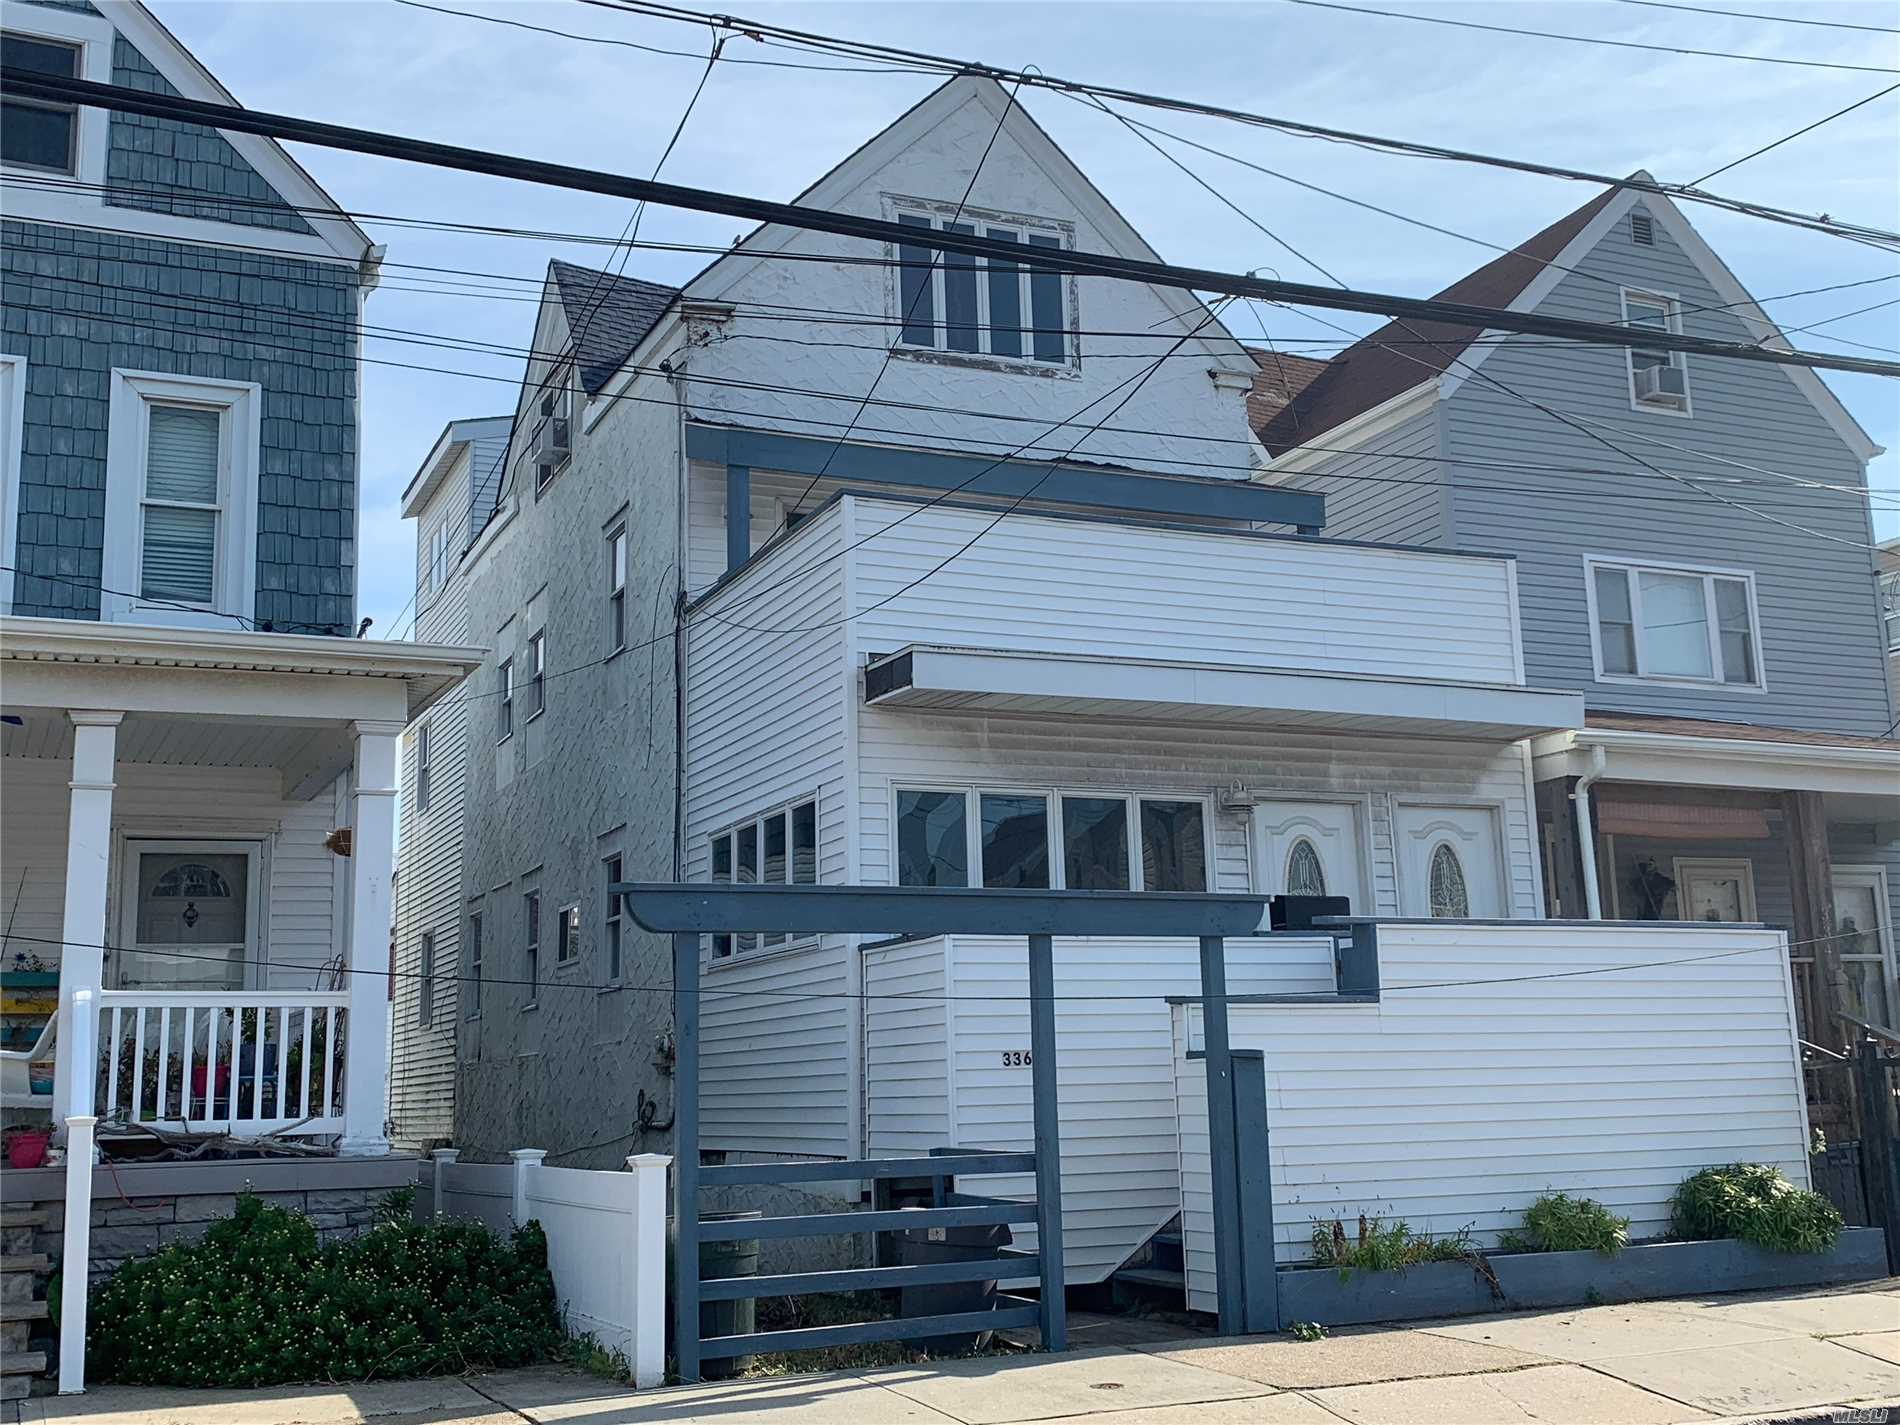 Sold As Is, Legal 2 Family In Happening Rockaway Beach! Property Does Need Rehab, Partially Gutted, Partially Renovated. Property Is Set Up As An Apartment On Each Of The Floors. Only One Current Boiler, 1 Gas And 1 Electric Meter. Rehab Loan Or Cash Only.